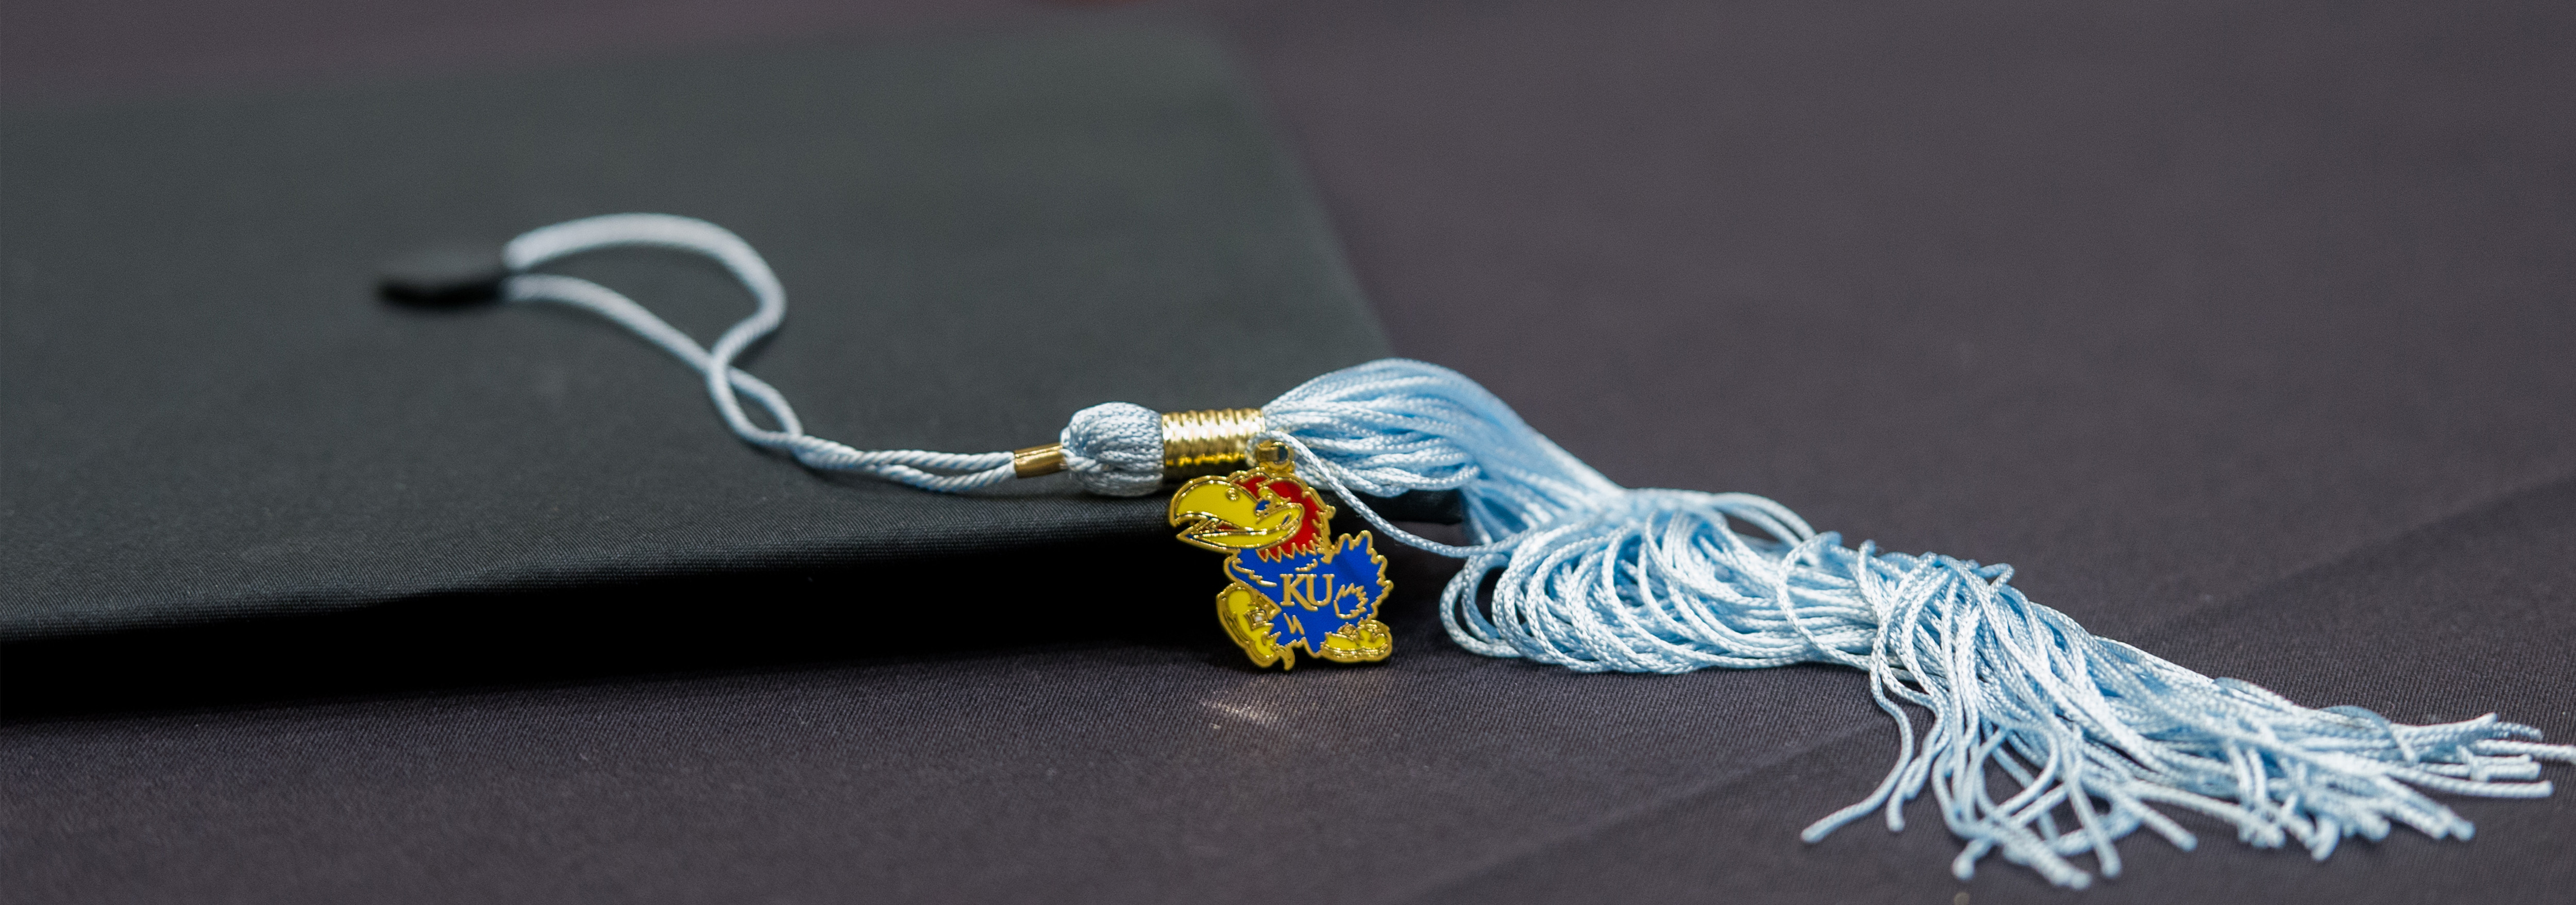 A graduation hat with a Jayhawk on the tassle